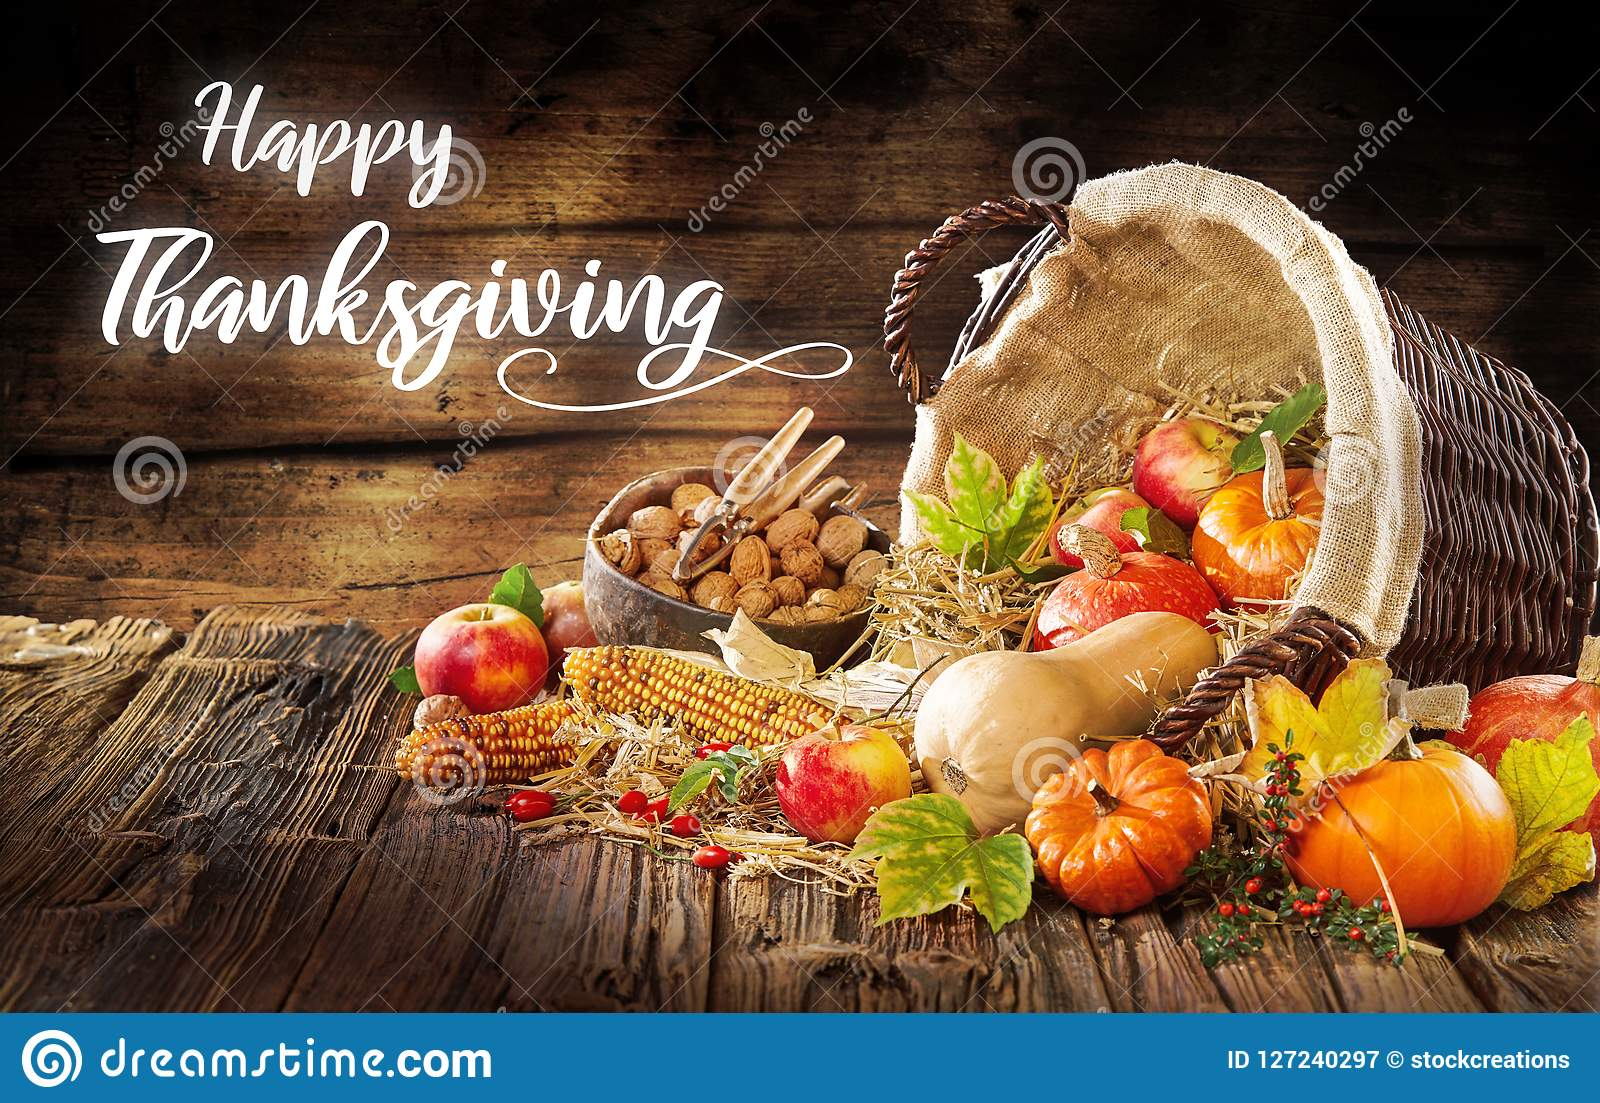 modern image of a thanksgiving invitation stock image image of